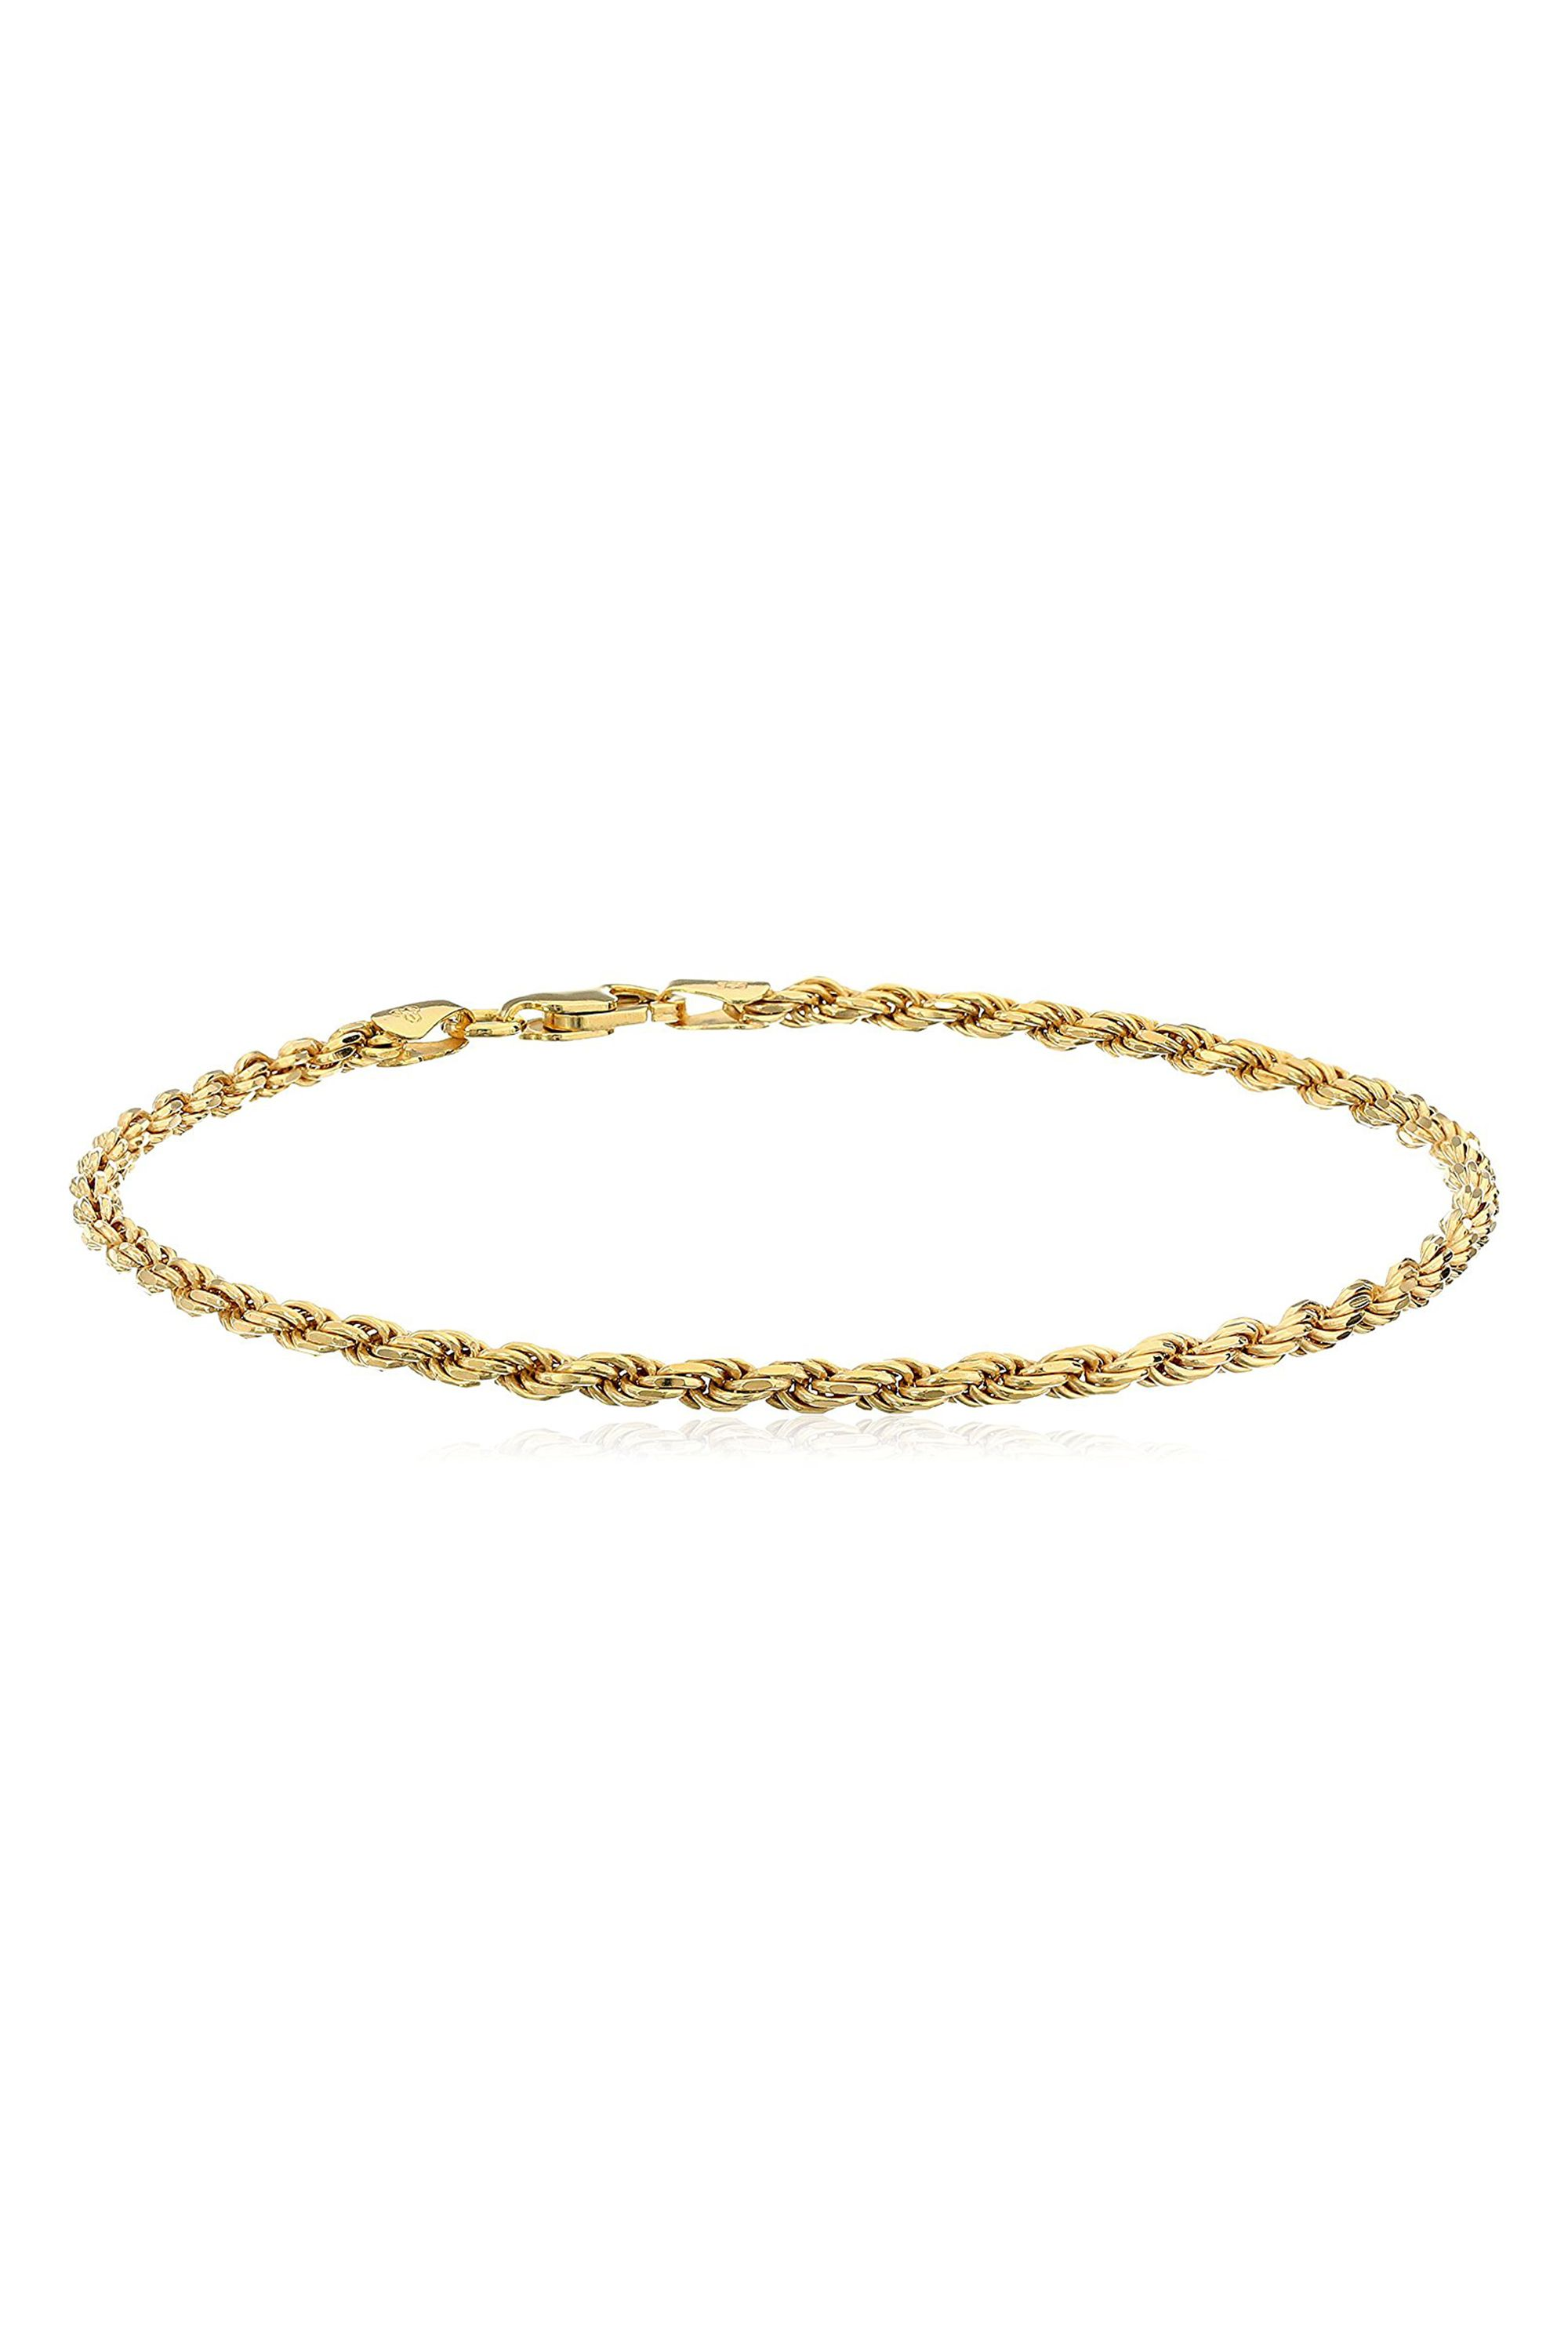 diamond length ankle cut bracelet gold rope color tri pin anklet chain